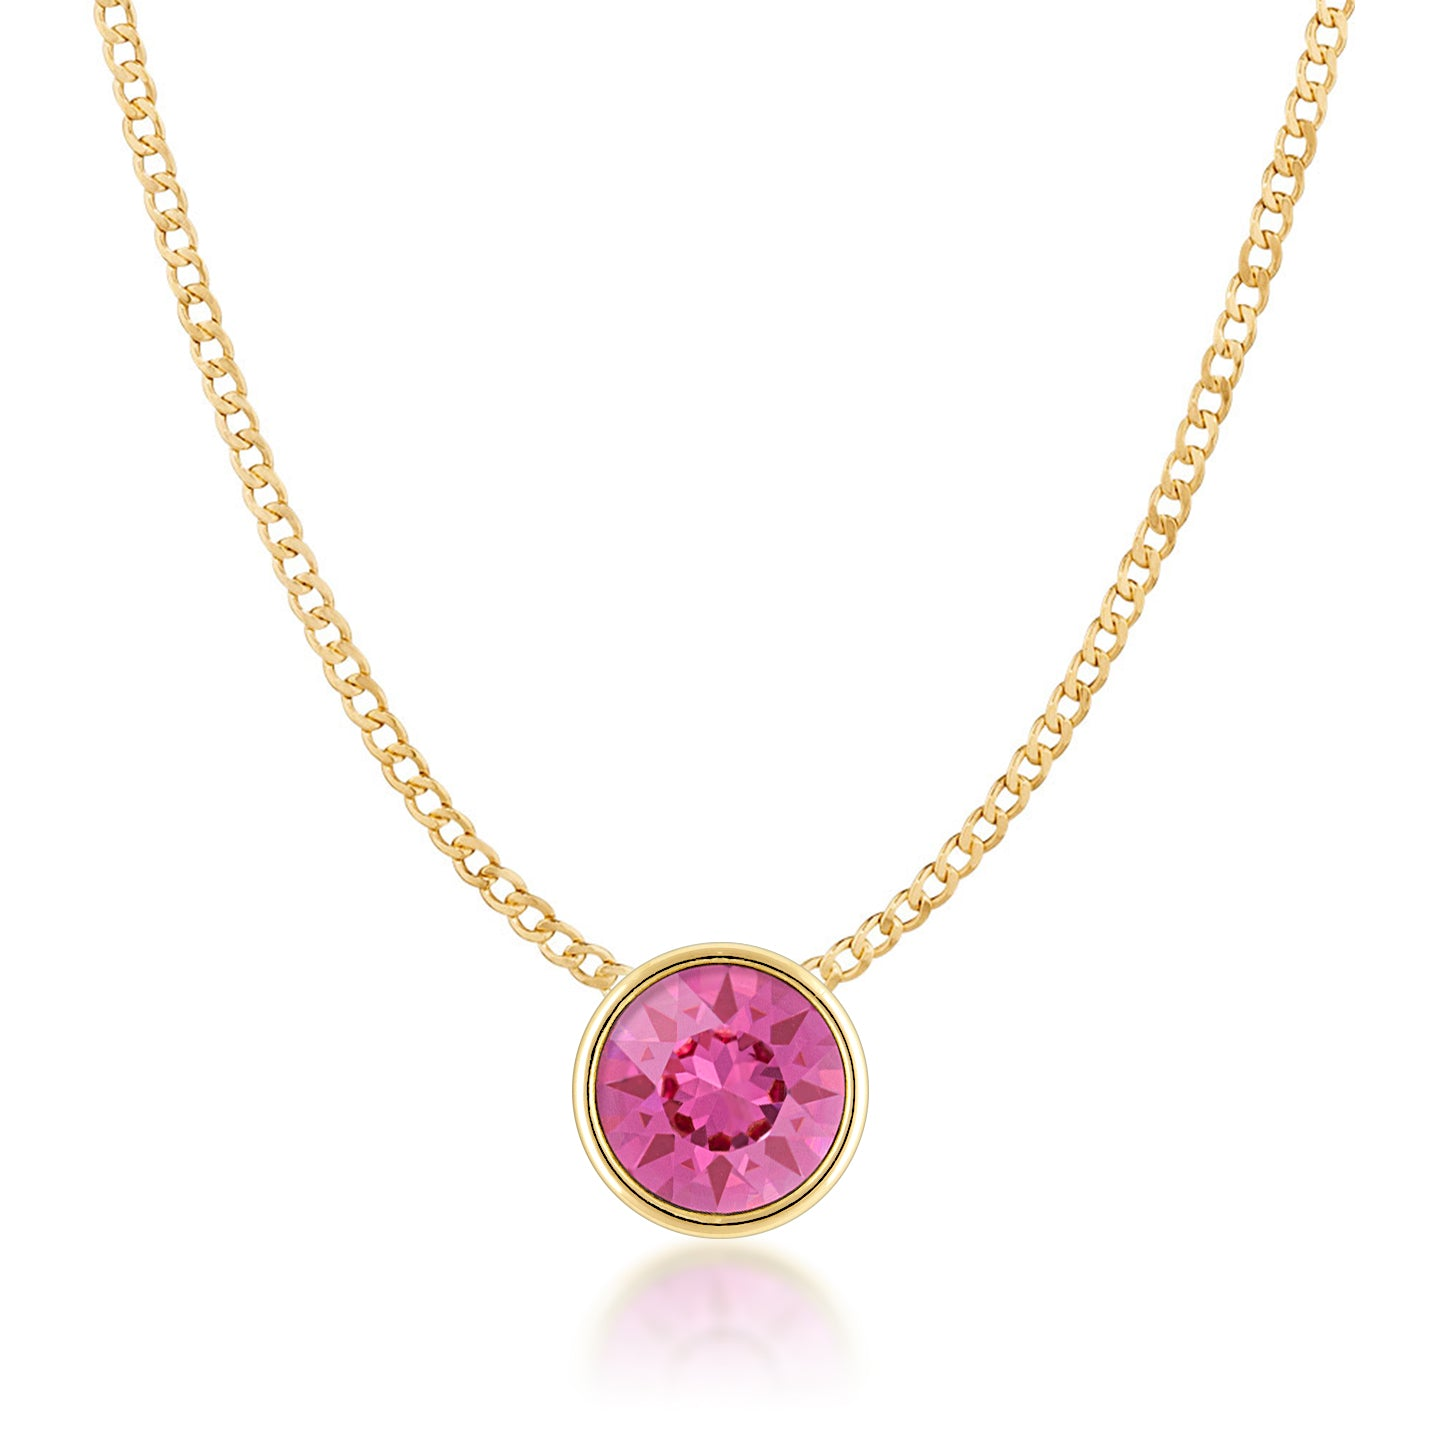 Harley Small Pendant Necklace with Pink Rose Round Crystals from Swarovski Gold Plated - Ed Heart